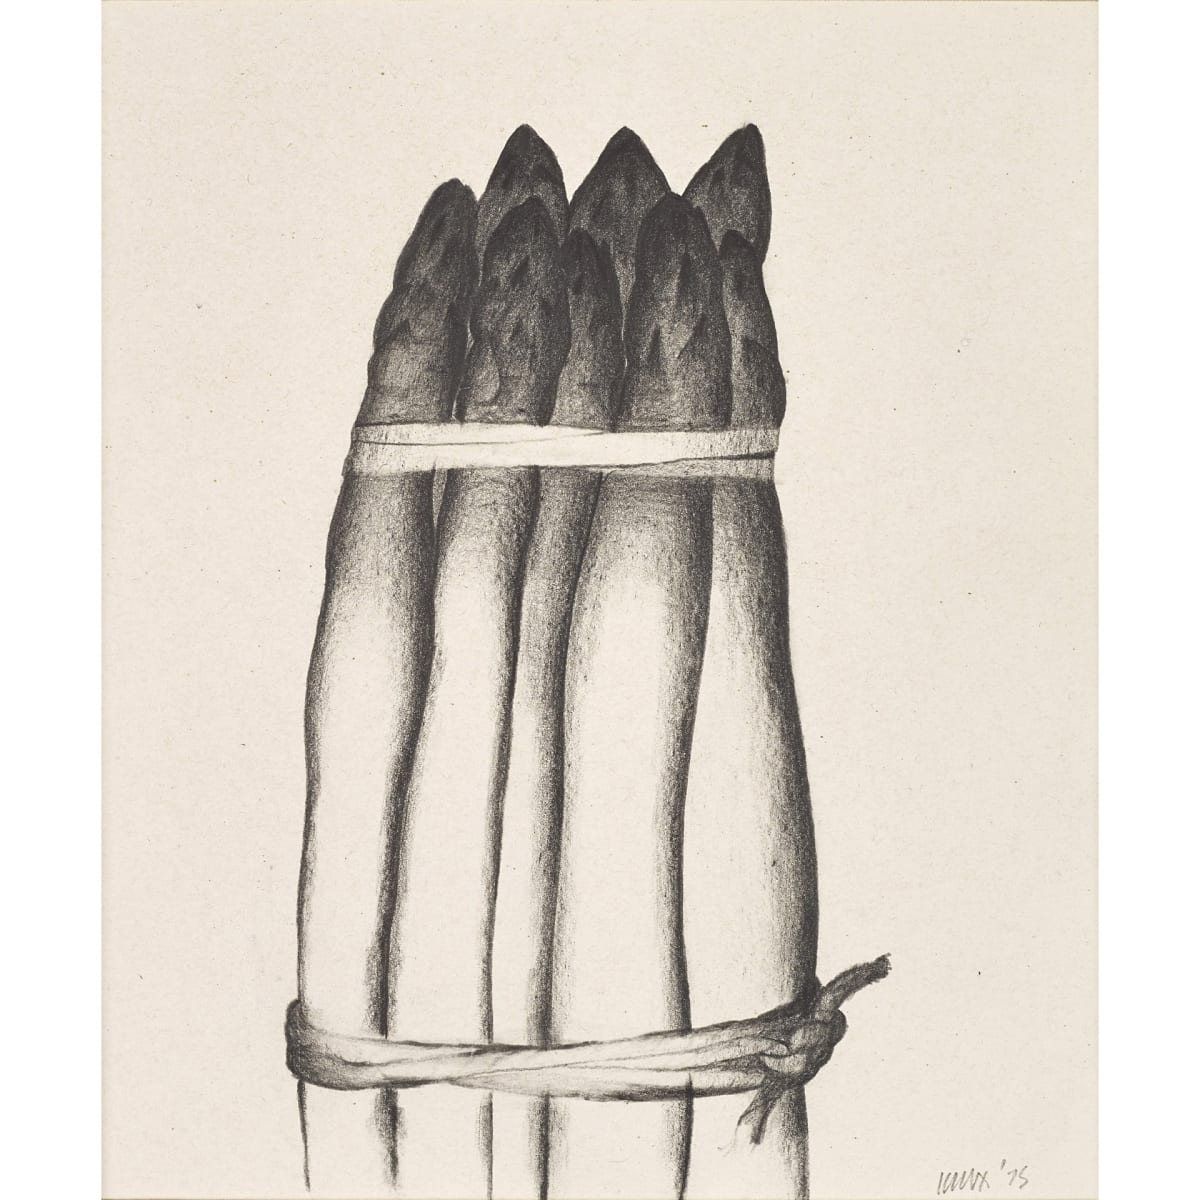 Jack Knox Asparagus, 1975 signed and dated '75 conté on paper 7 x 6 inches